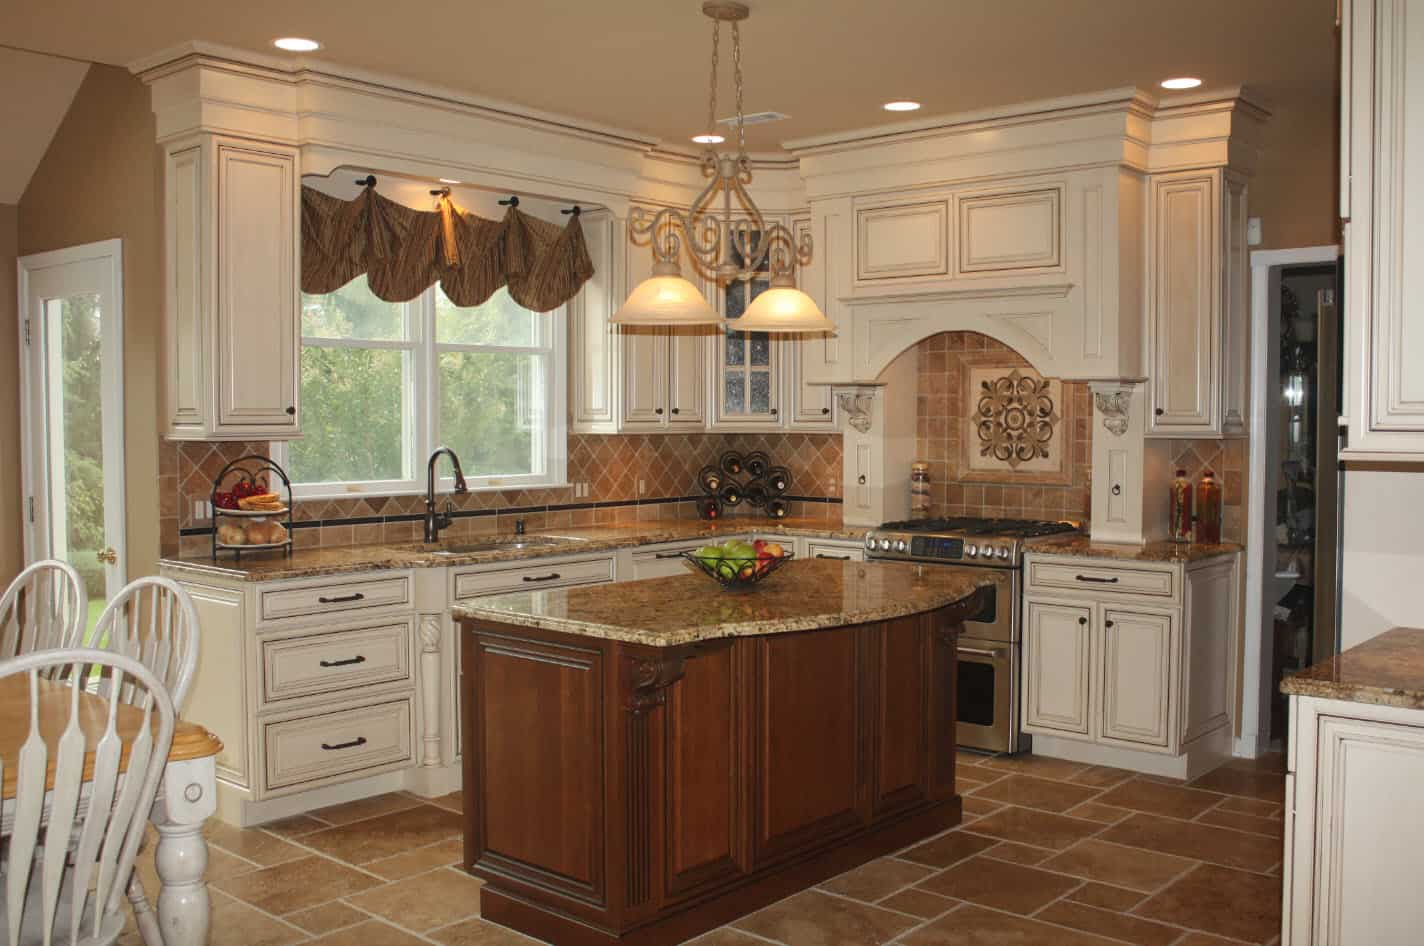 Remodeled Kitchen Pictures Sycamore Kitchens & More Of Newtown Pa Receives Remodeling